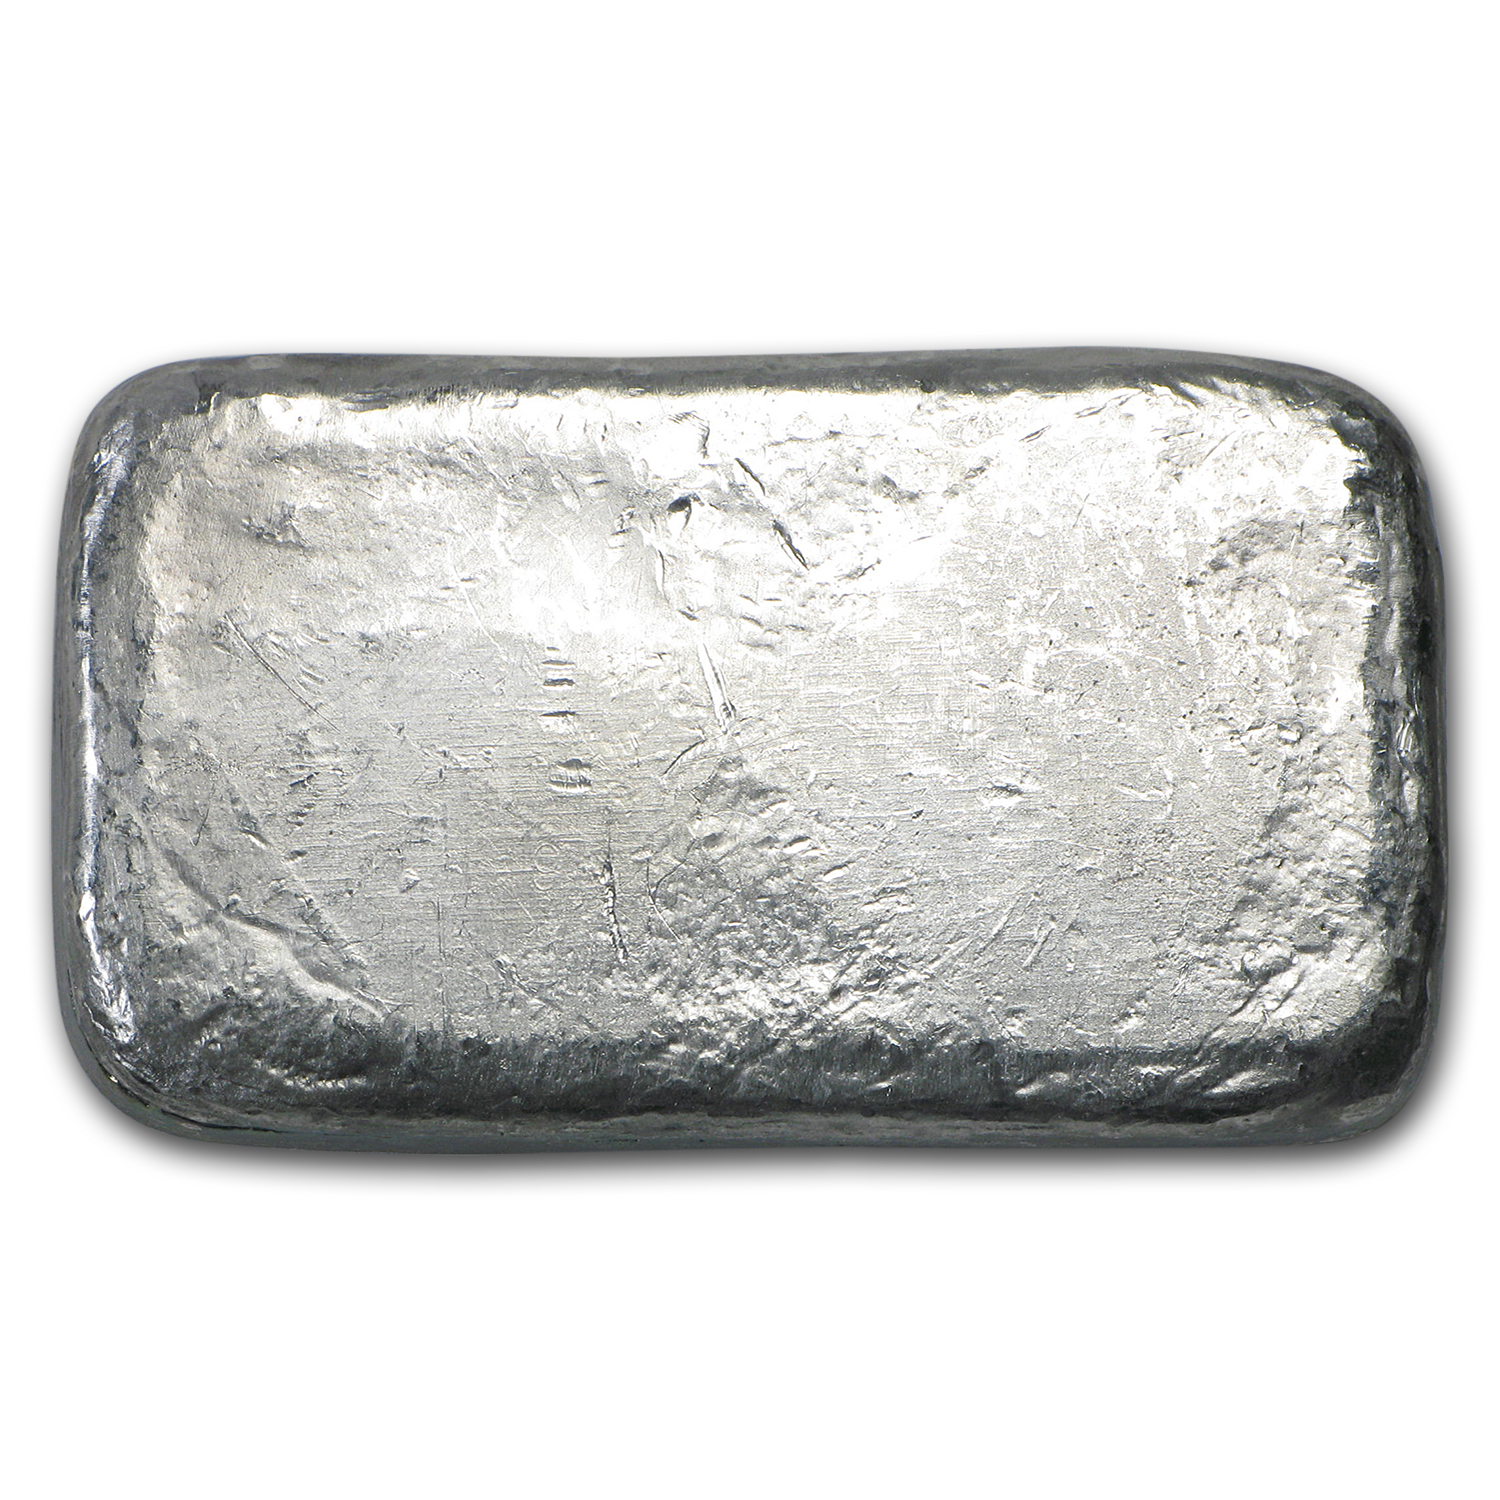 3 oz Silver Bar - Bison Bullion